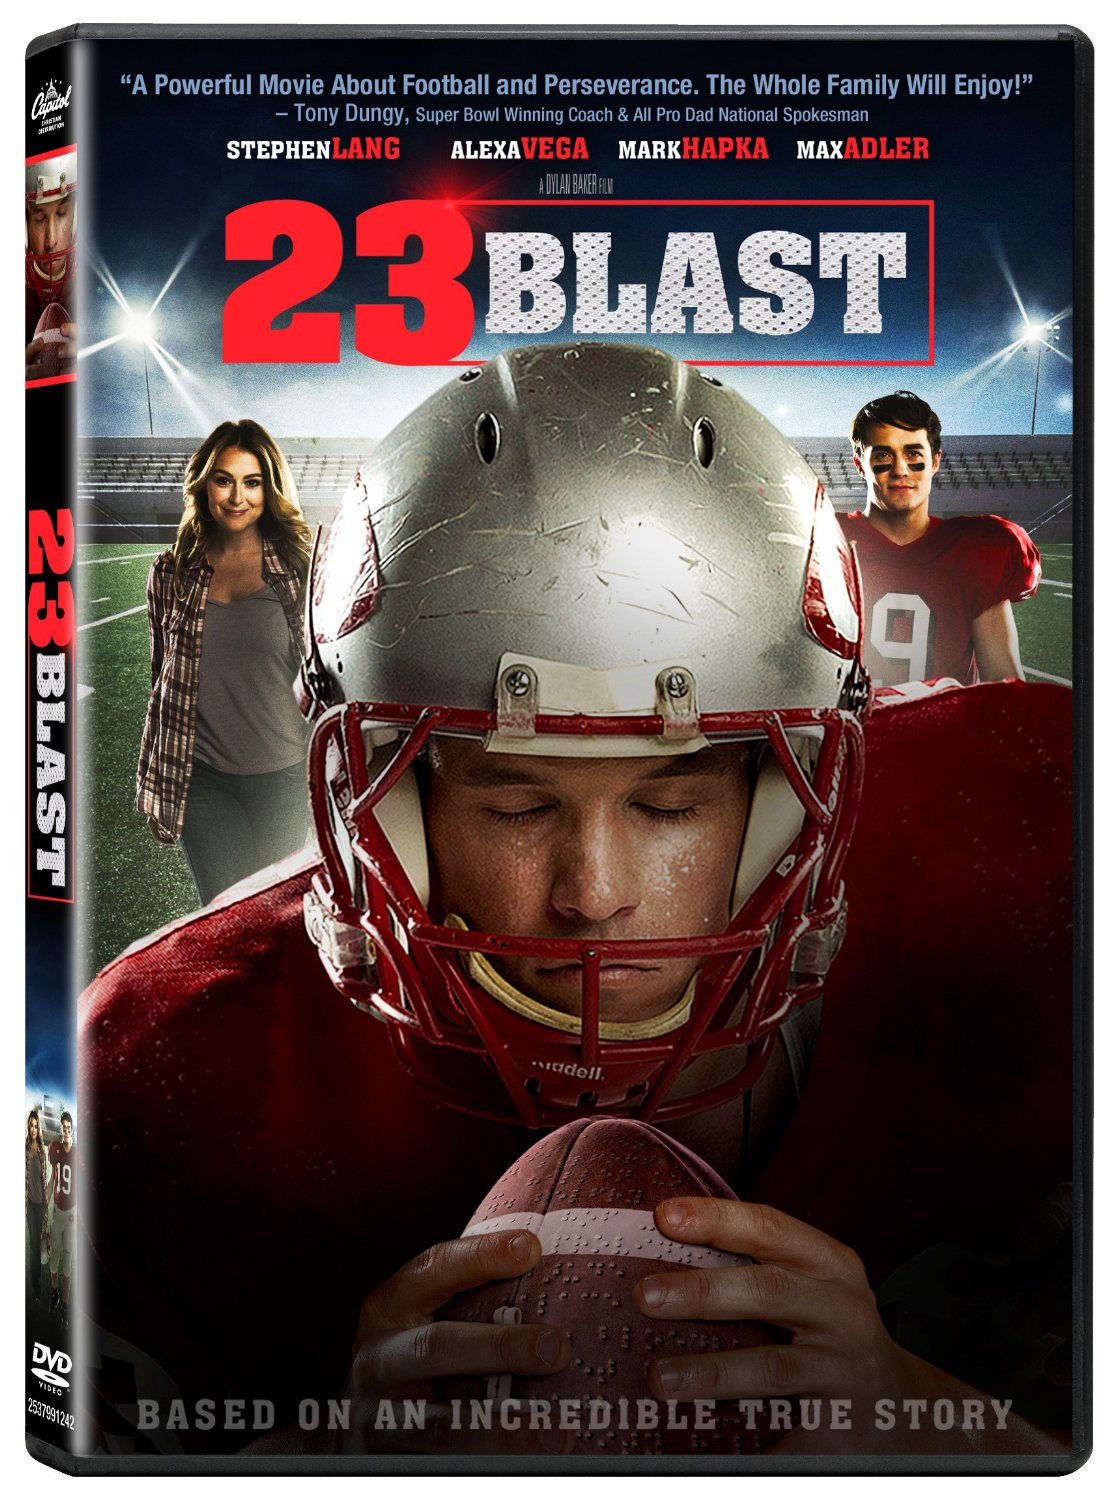 23 BLast – Another Great Family Movie